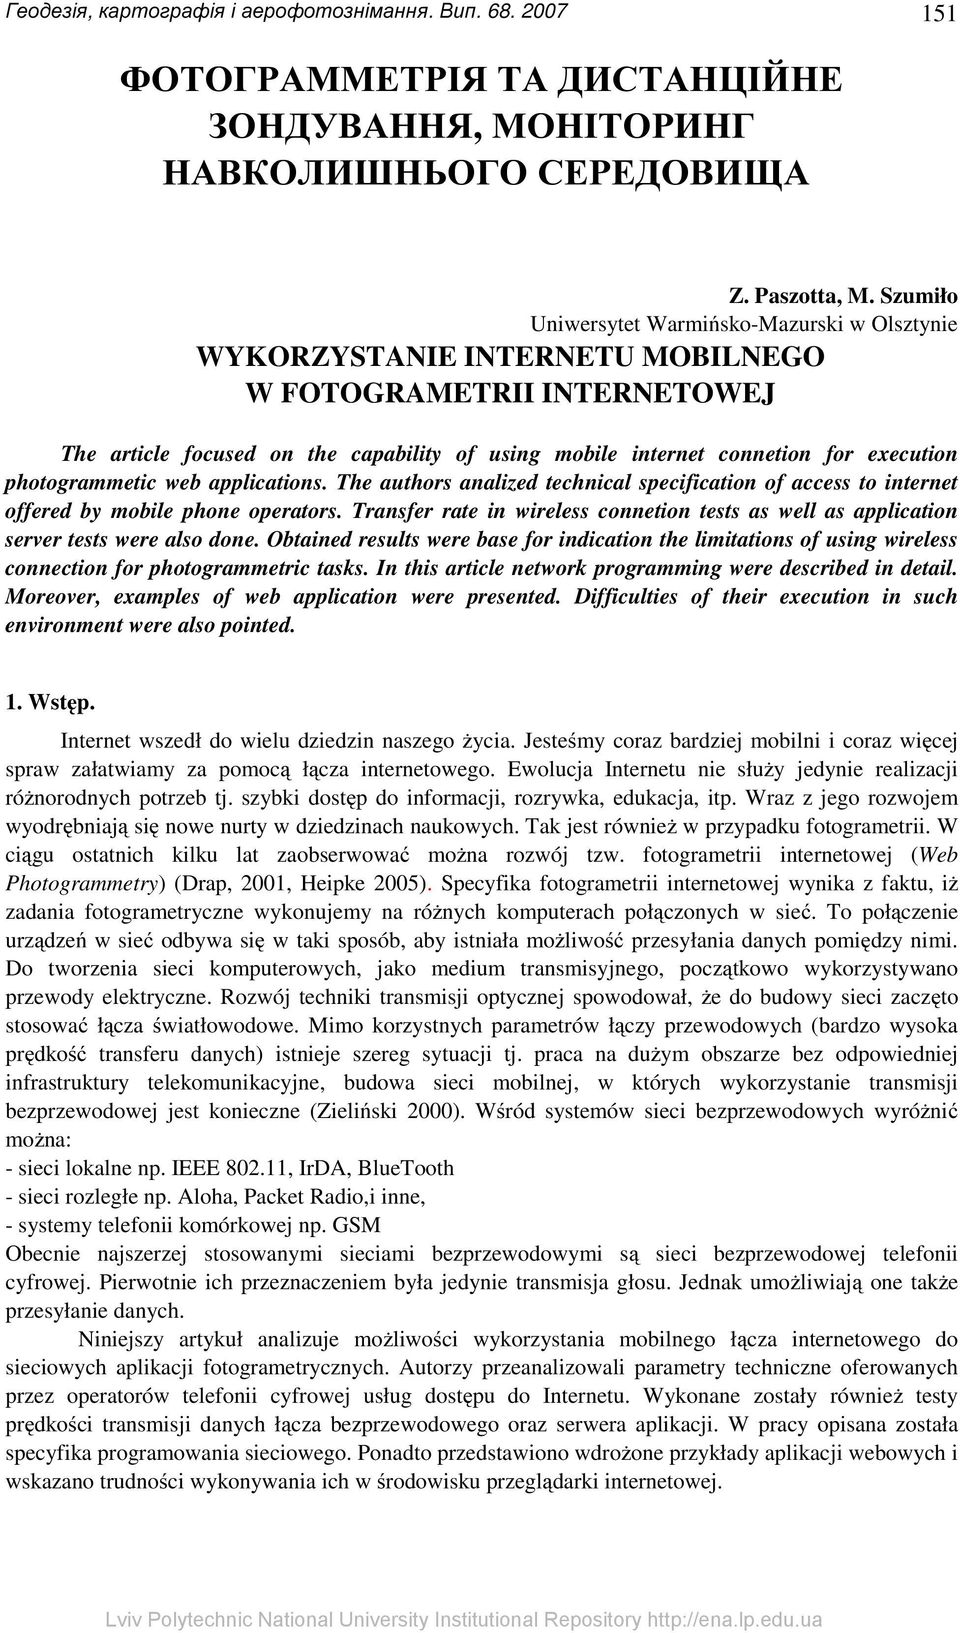 execution photogrammetic web applications. The authors analized technical specification of access to internet offered by mobile phone operators.